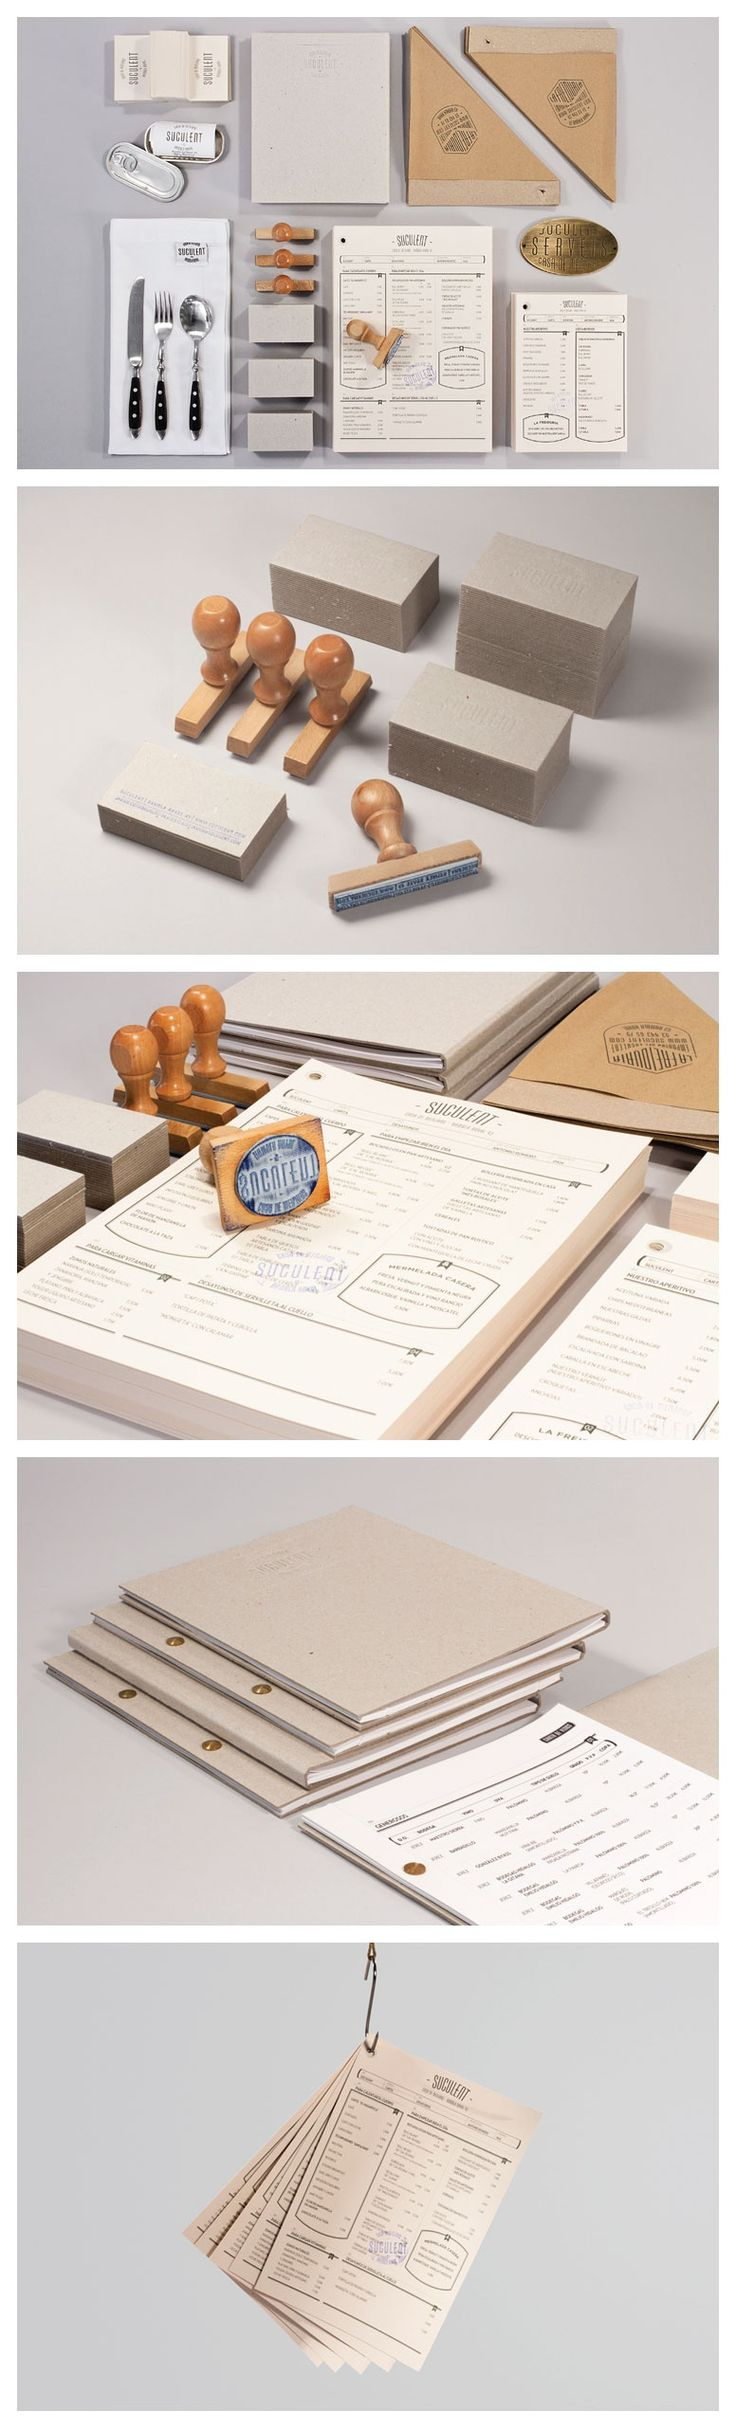 76 best Menu images on Pinterest | Graph design, Menu layout and ...